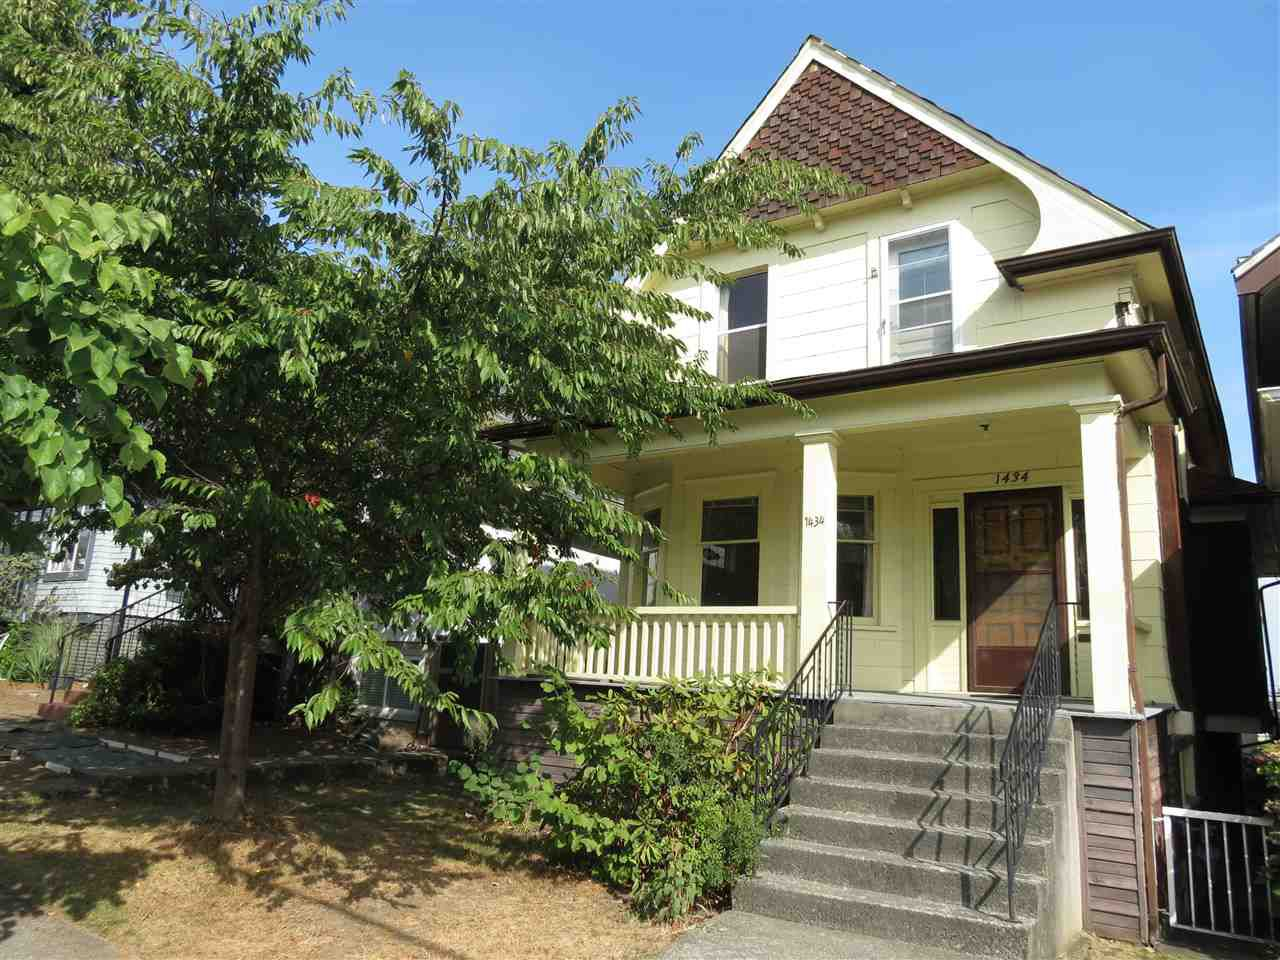 Main Photo: 1434 LAKEWOOD Drive in Vancouver: Grandview VE House for sale (Vancouver East)  : MLS®# R2206803